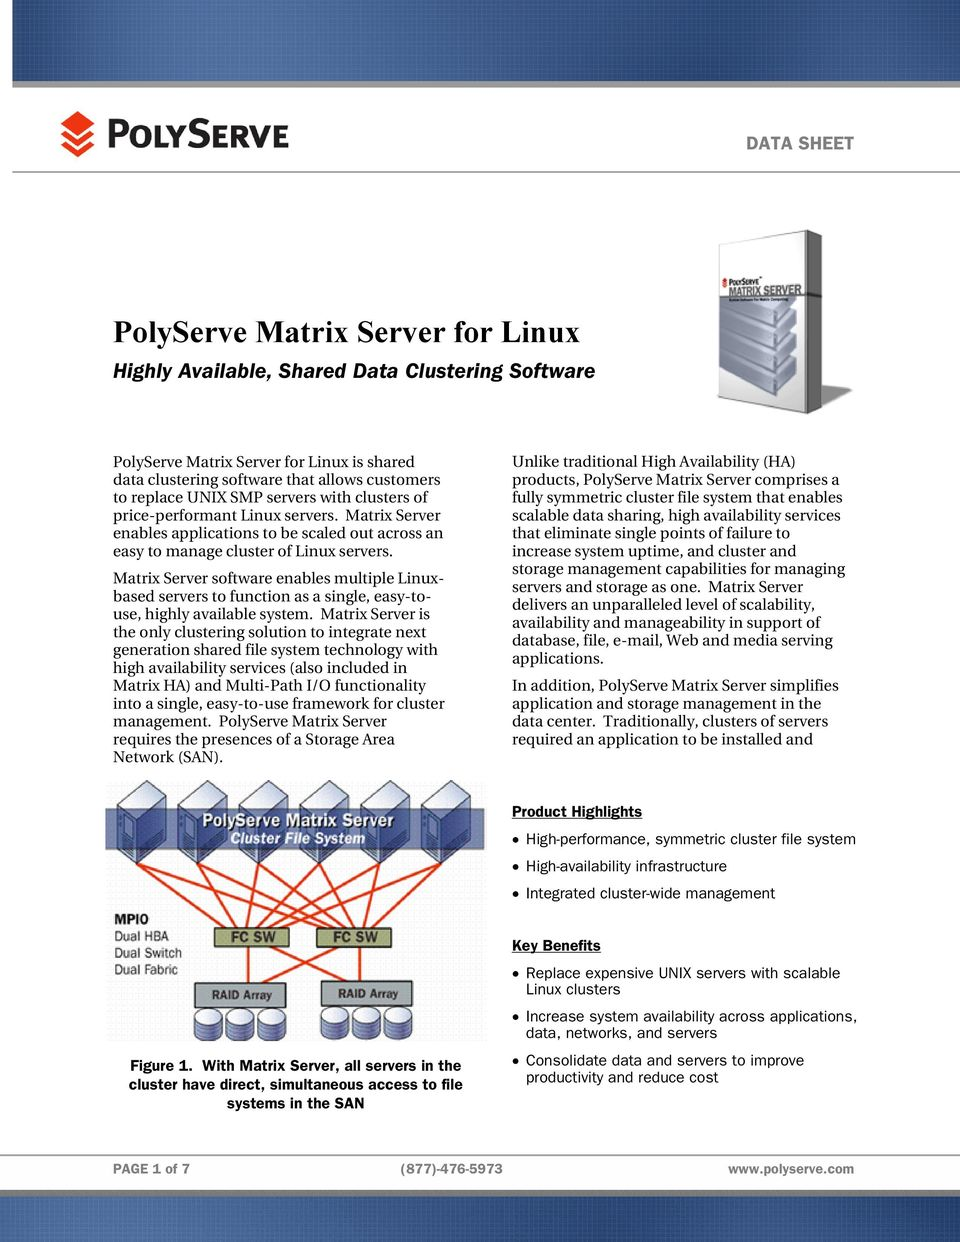 Matrix Server software enables multiple Linuxbased servers to function as a single, easy-touse, highly available system.